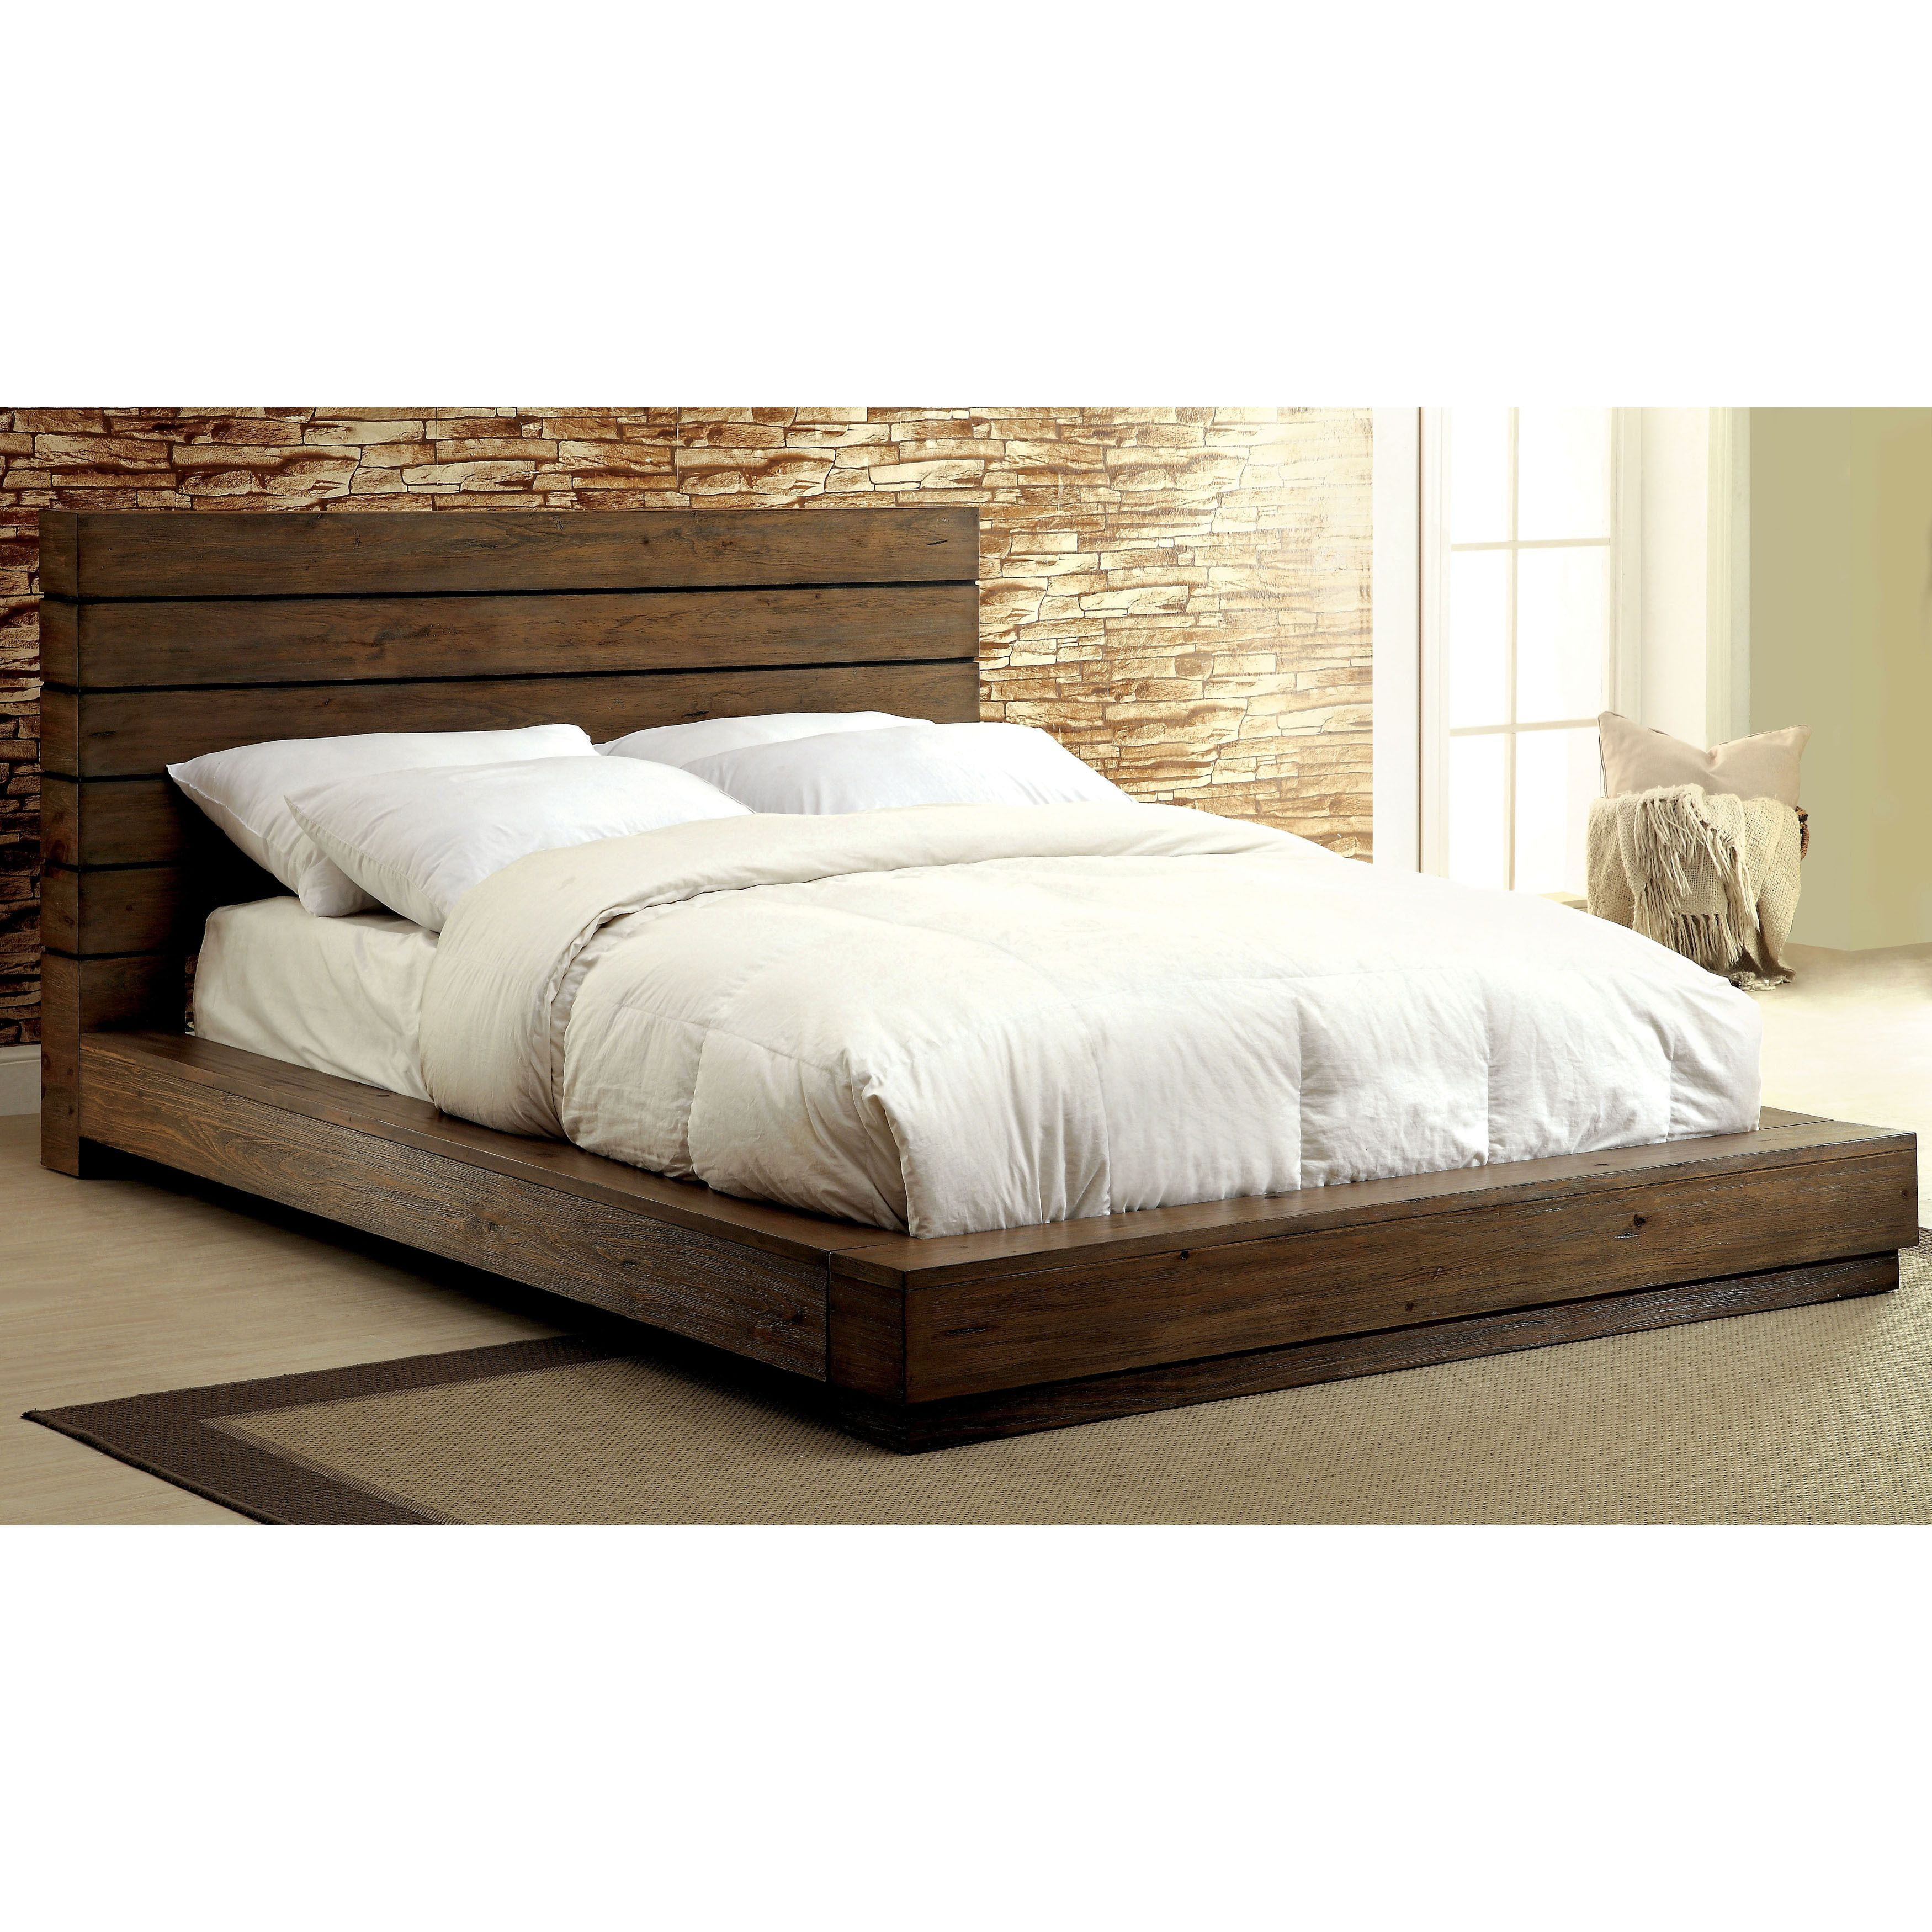 Furniture Of America Emallson Rustic Natural Tone Low Profile Bed Queen Brown